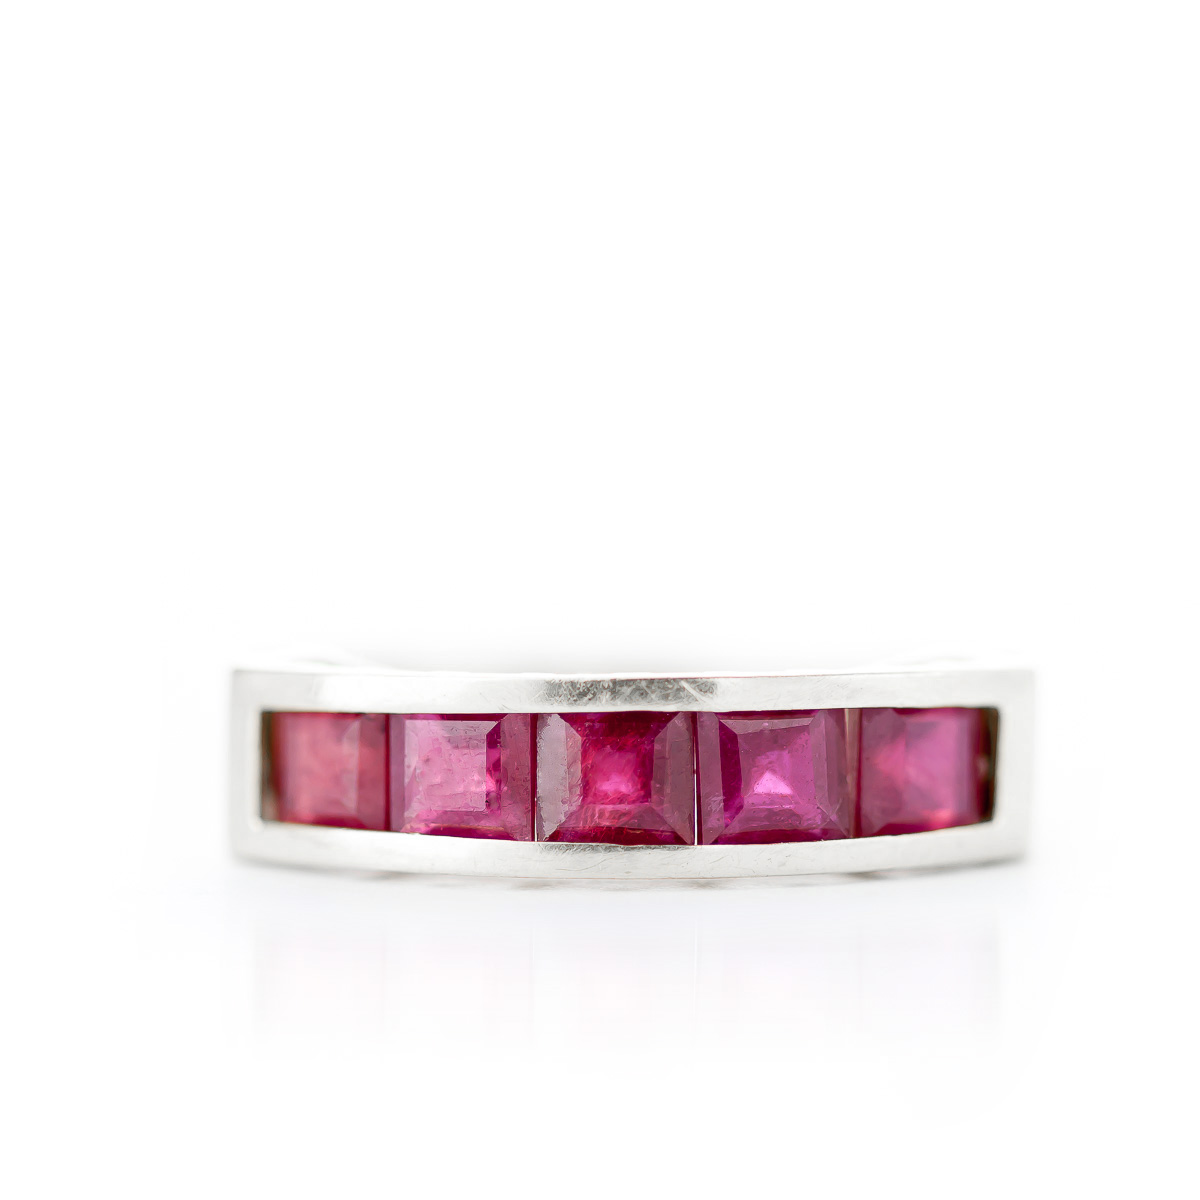 Ruby Prestige Ring 2.5 ctw in 9ct White Gold